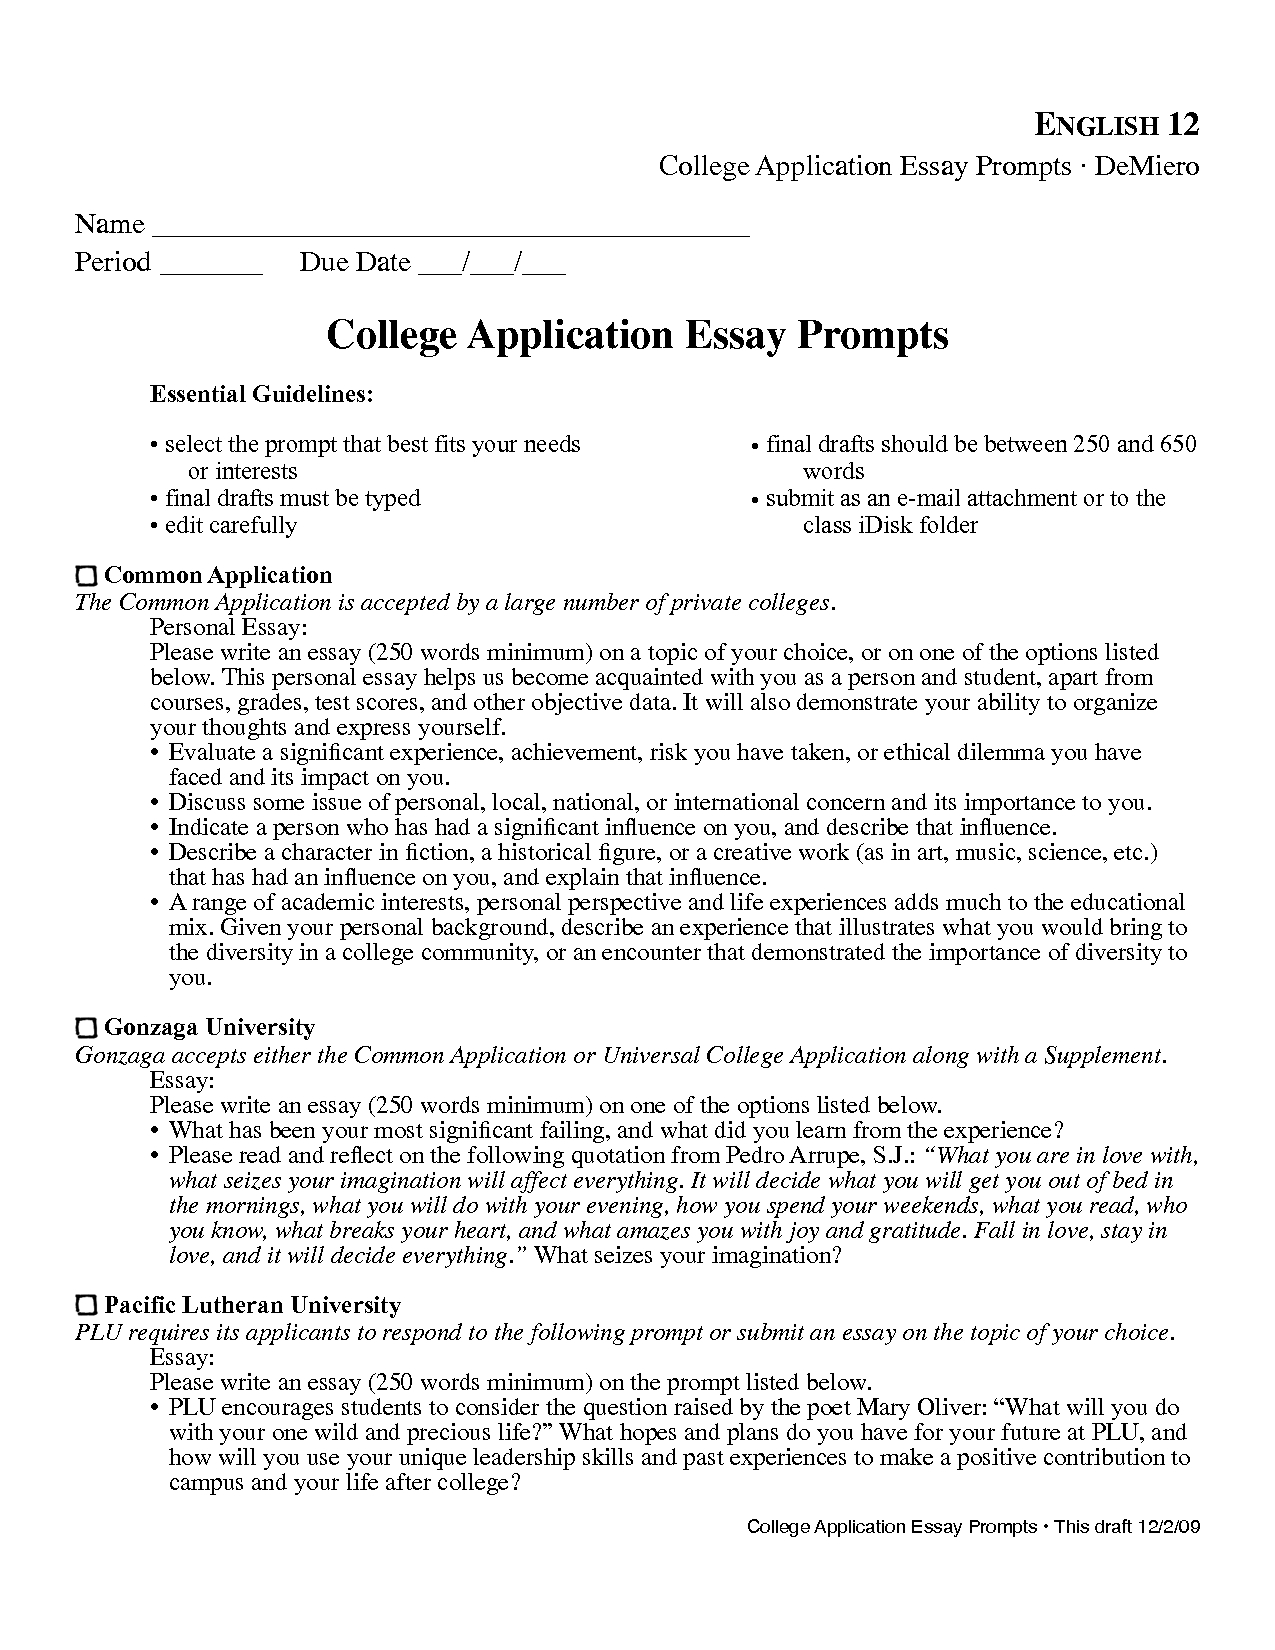 012 College Admissiony Topics Writings Andys Prompts Onwe Bioinnovate Co Throu Admissions Question Examples To Avoid Samples App Good Prompt Common Application Surprising Essay 2015 Full